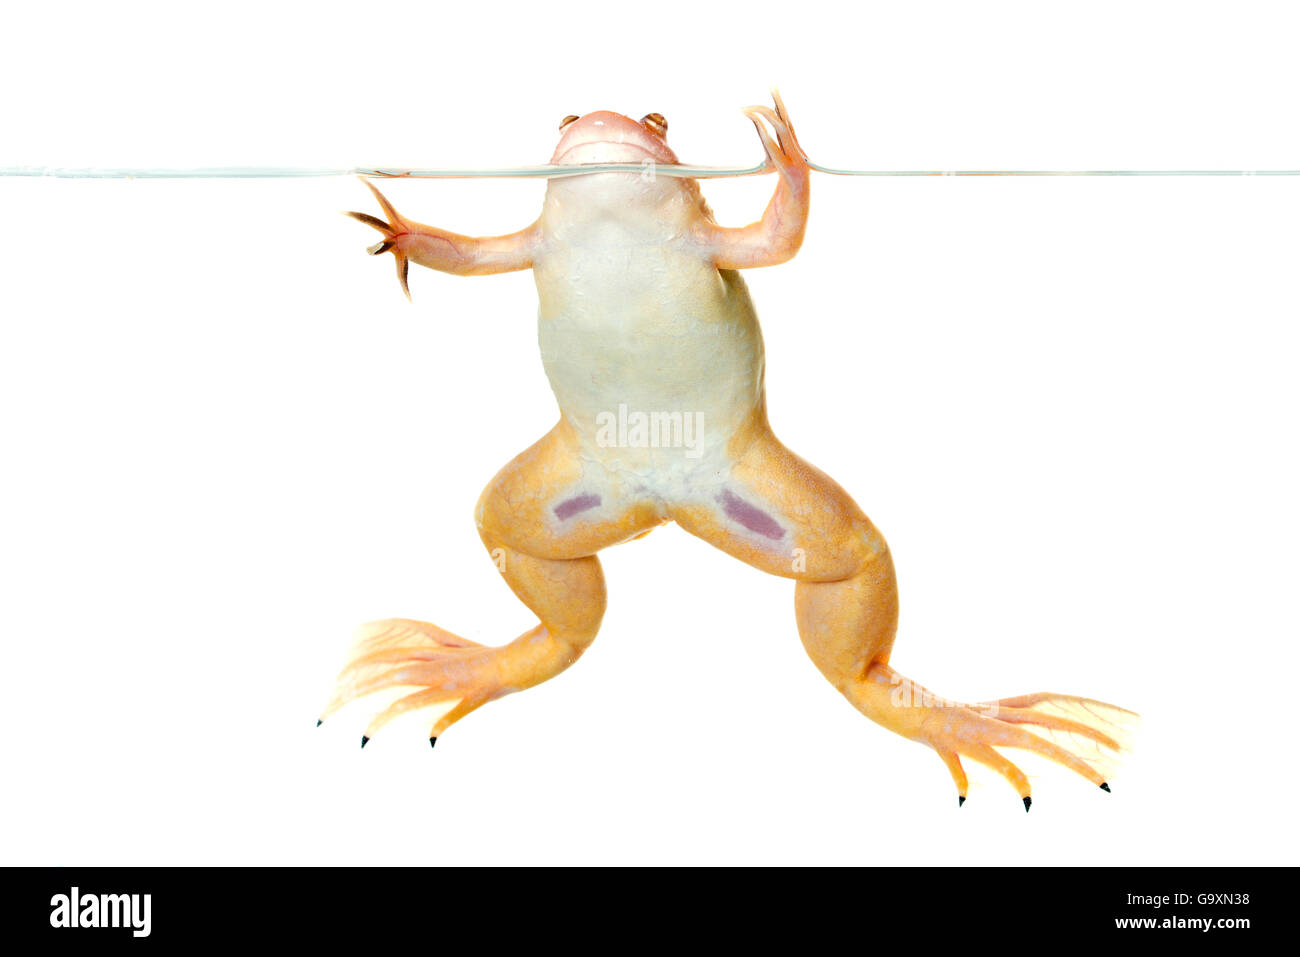 African clawed frog (Xenopus laevis) at water's surface, captive, occurs in Africa. - Stock Image